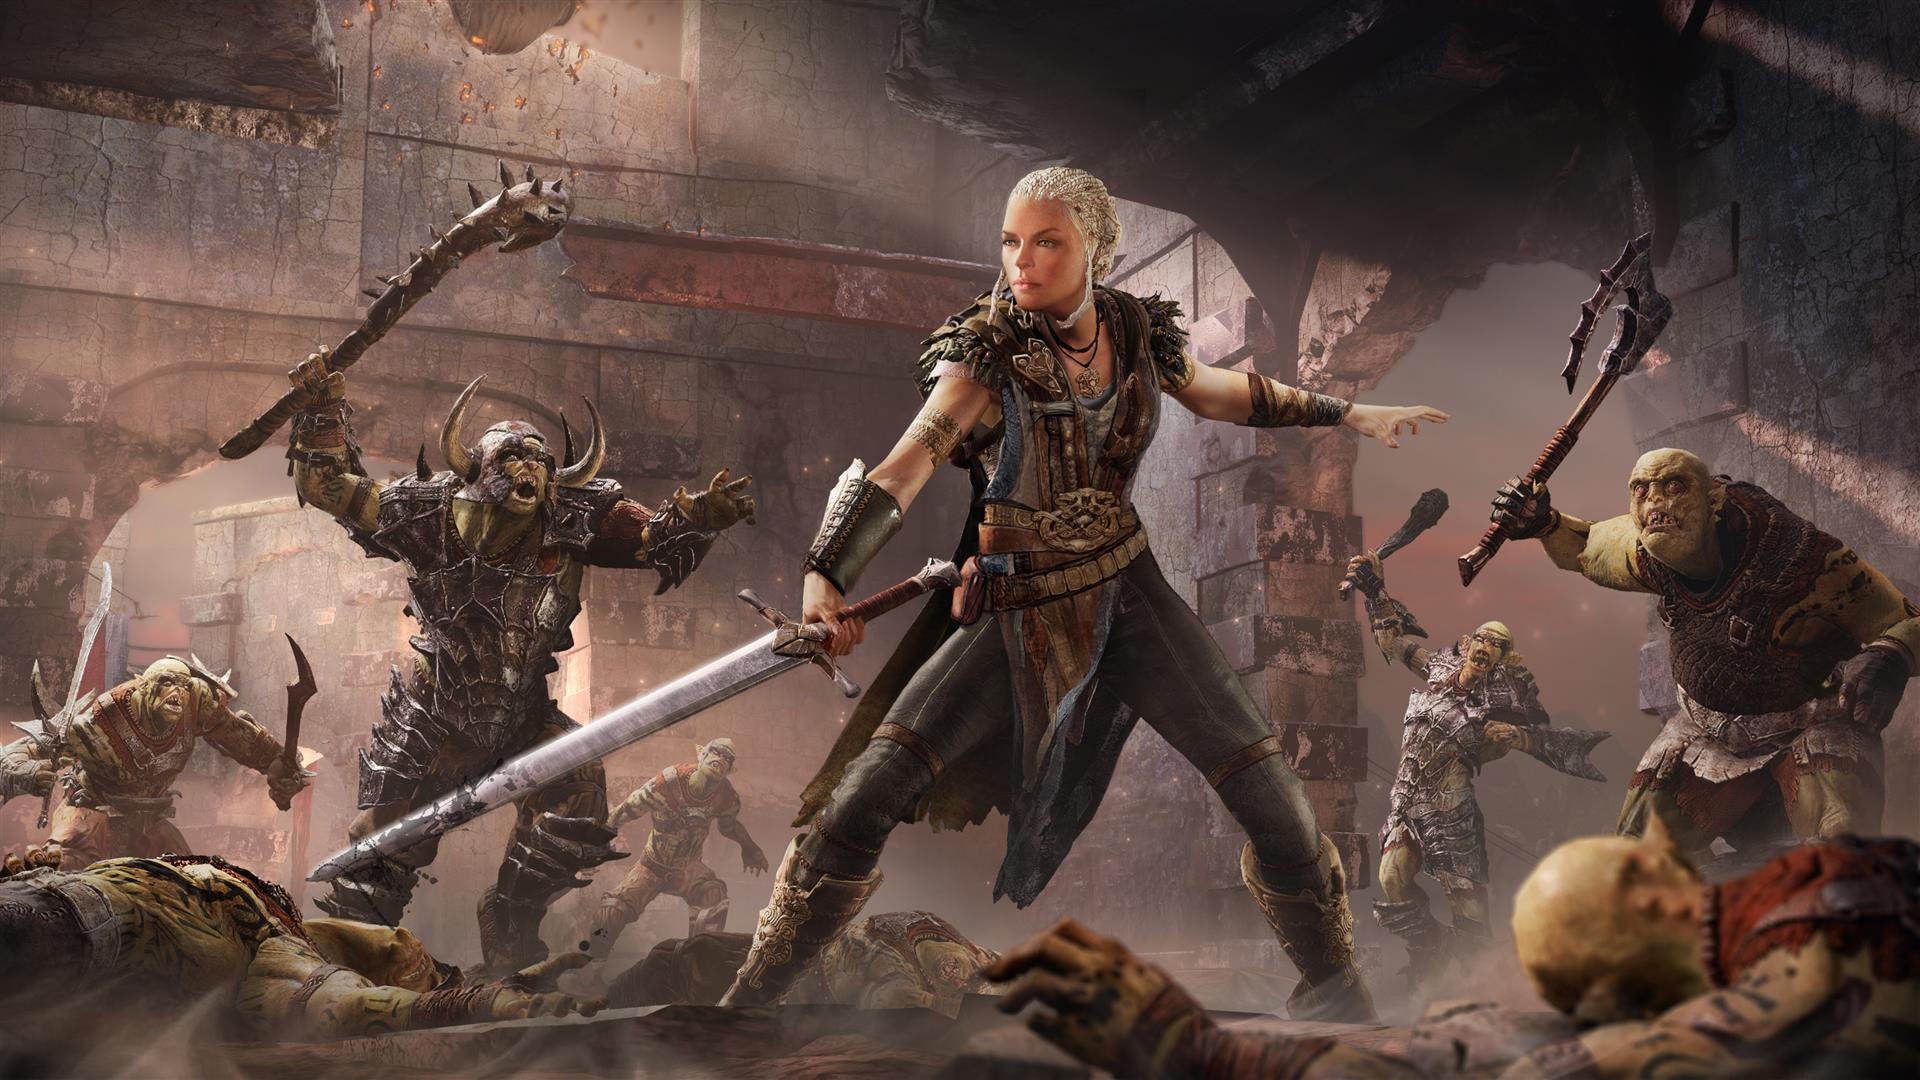 Shadow Of Mordor Free DLC For PC, PS4 And Xbox One